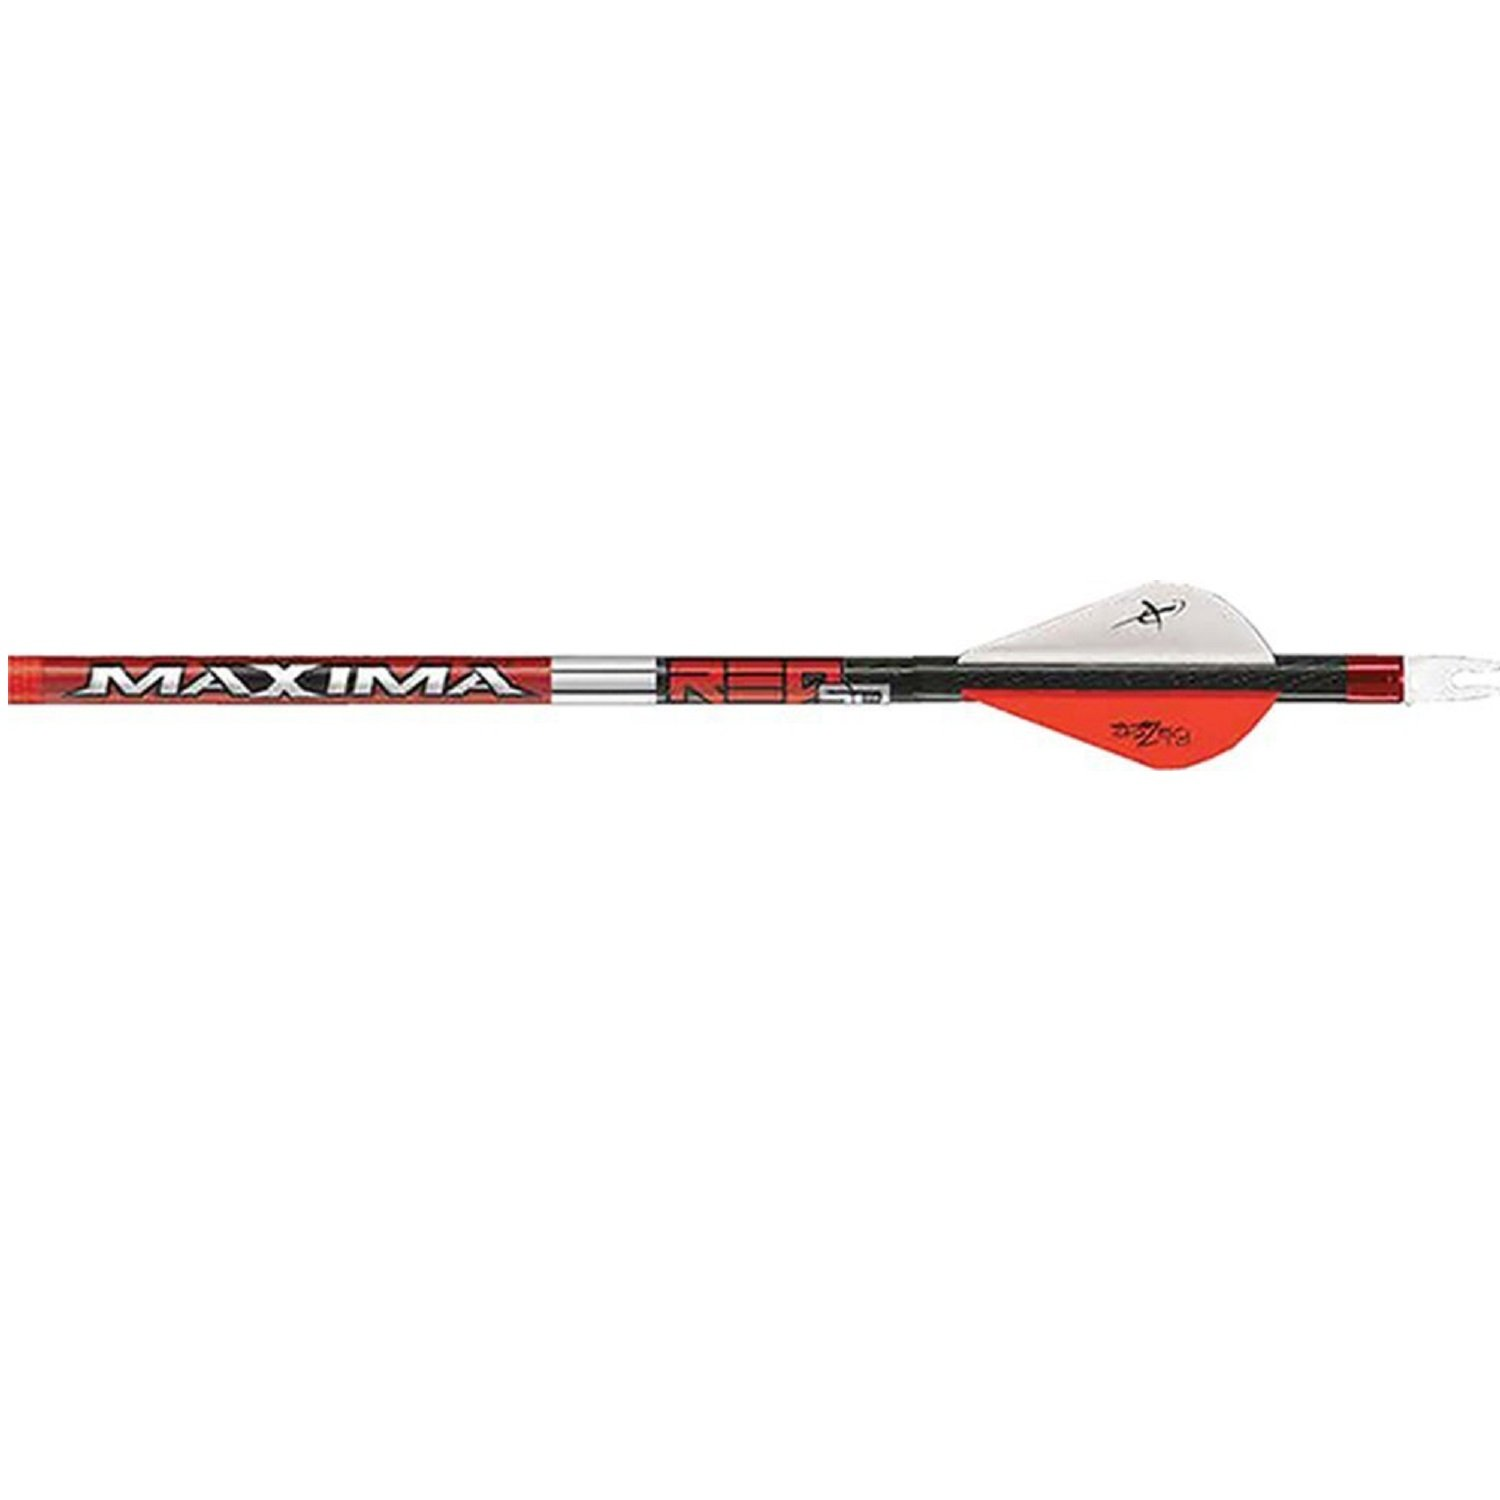 Carbon Express Maxima Red SD Carbon Arrow - 6 Pack